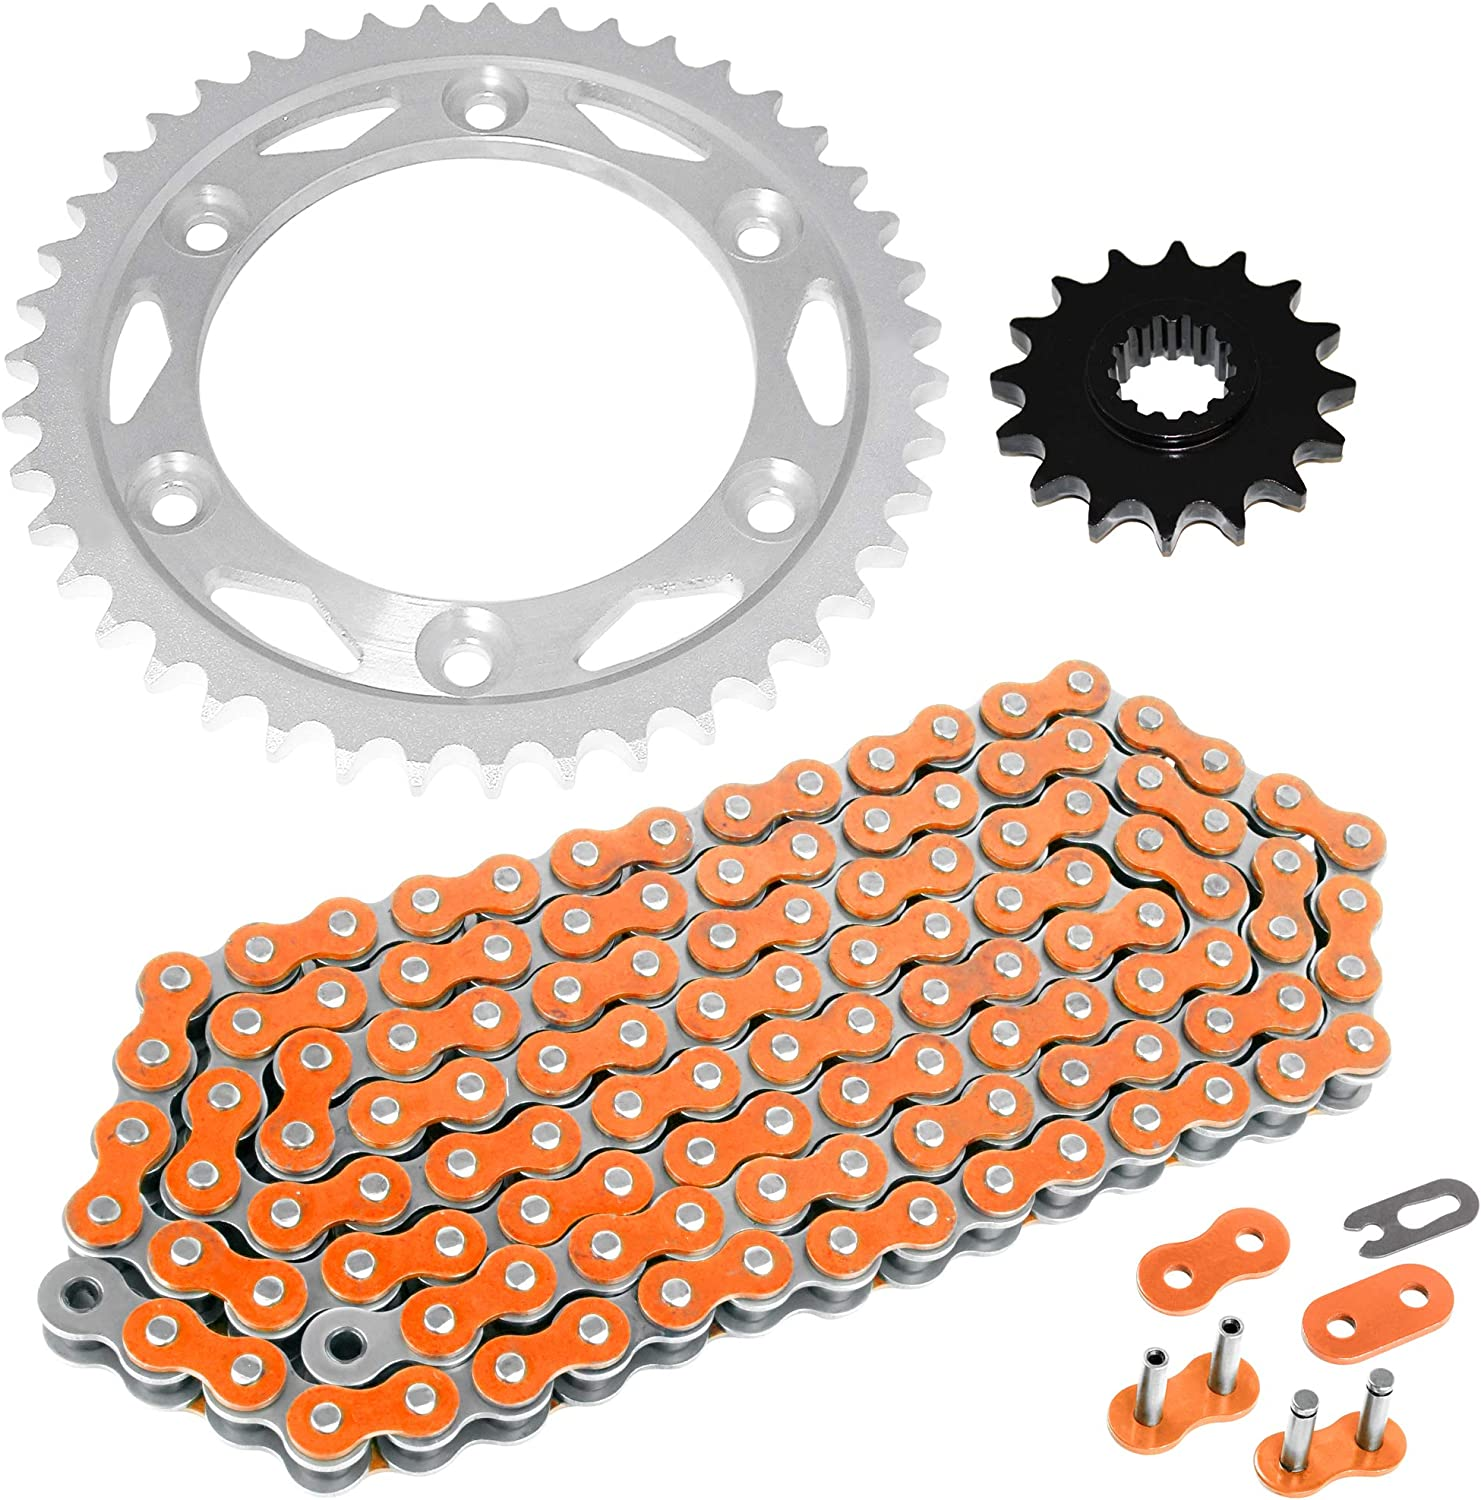 Caltric Drive Chain and Sprockets Kit fits HONDA CBR 929RR CBR954RR Fire Blade 2000 2001 2002 2003